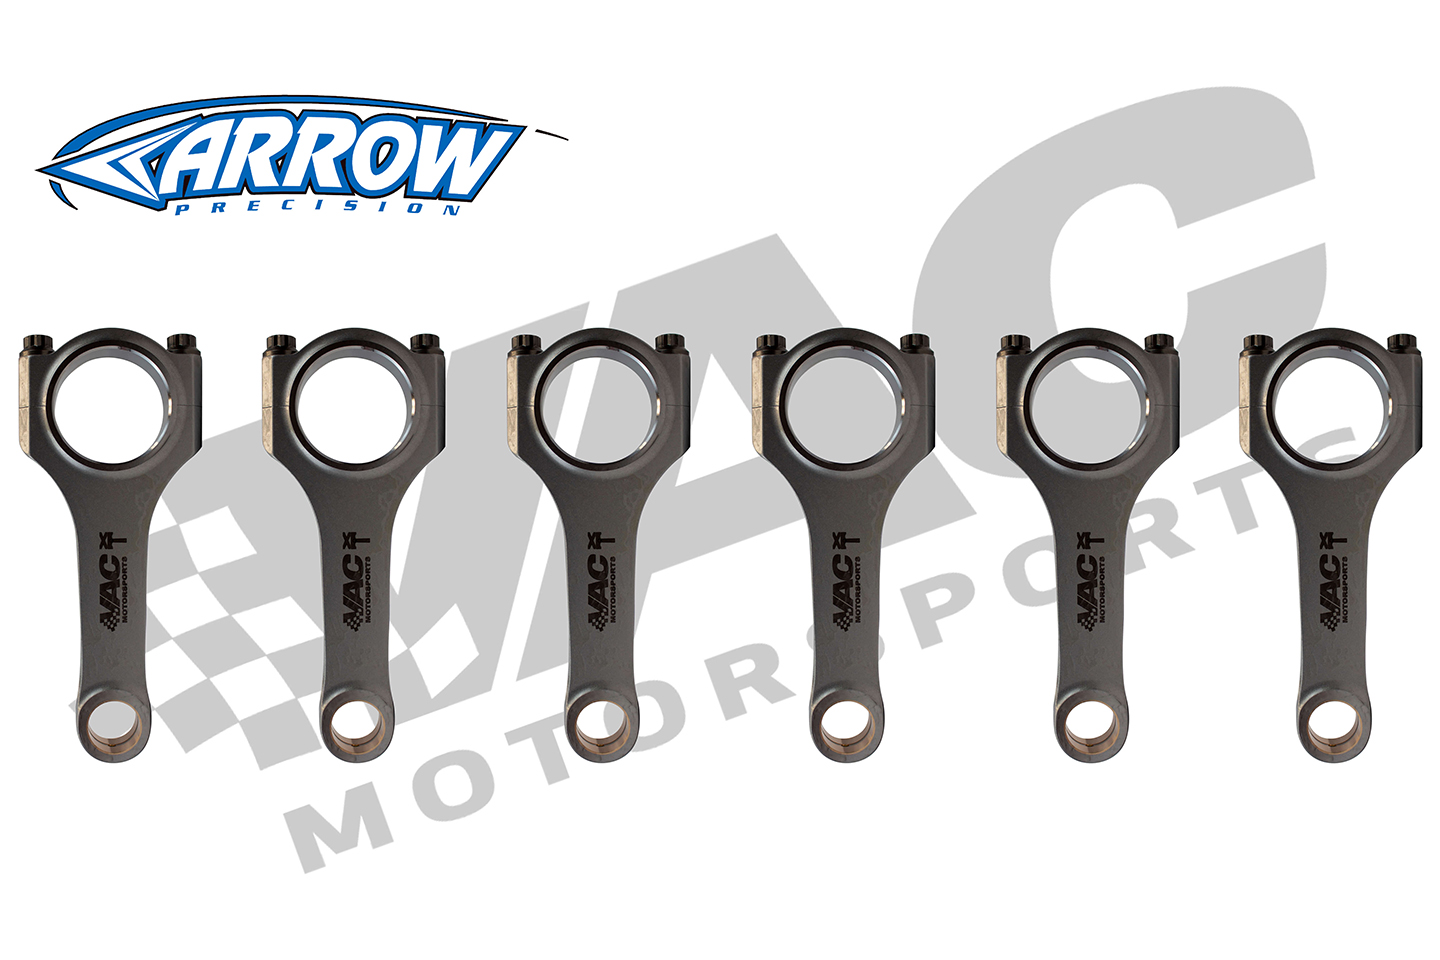 VAC PRO-XTREME Forged Connecting Rods by Arrow, BMW S54 SWATCH